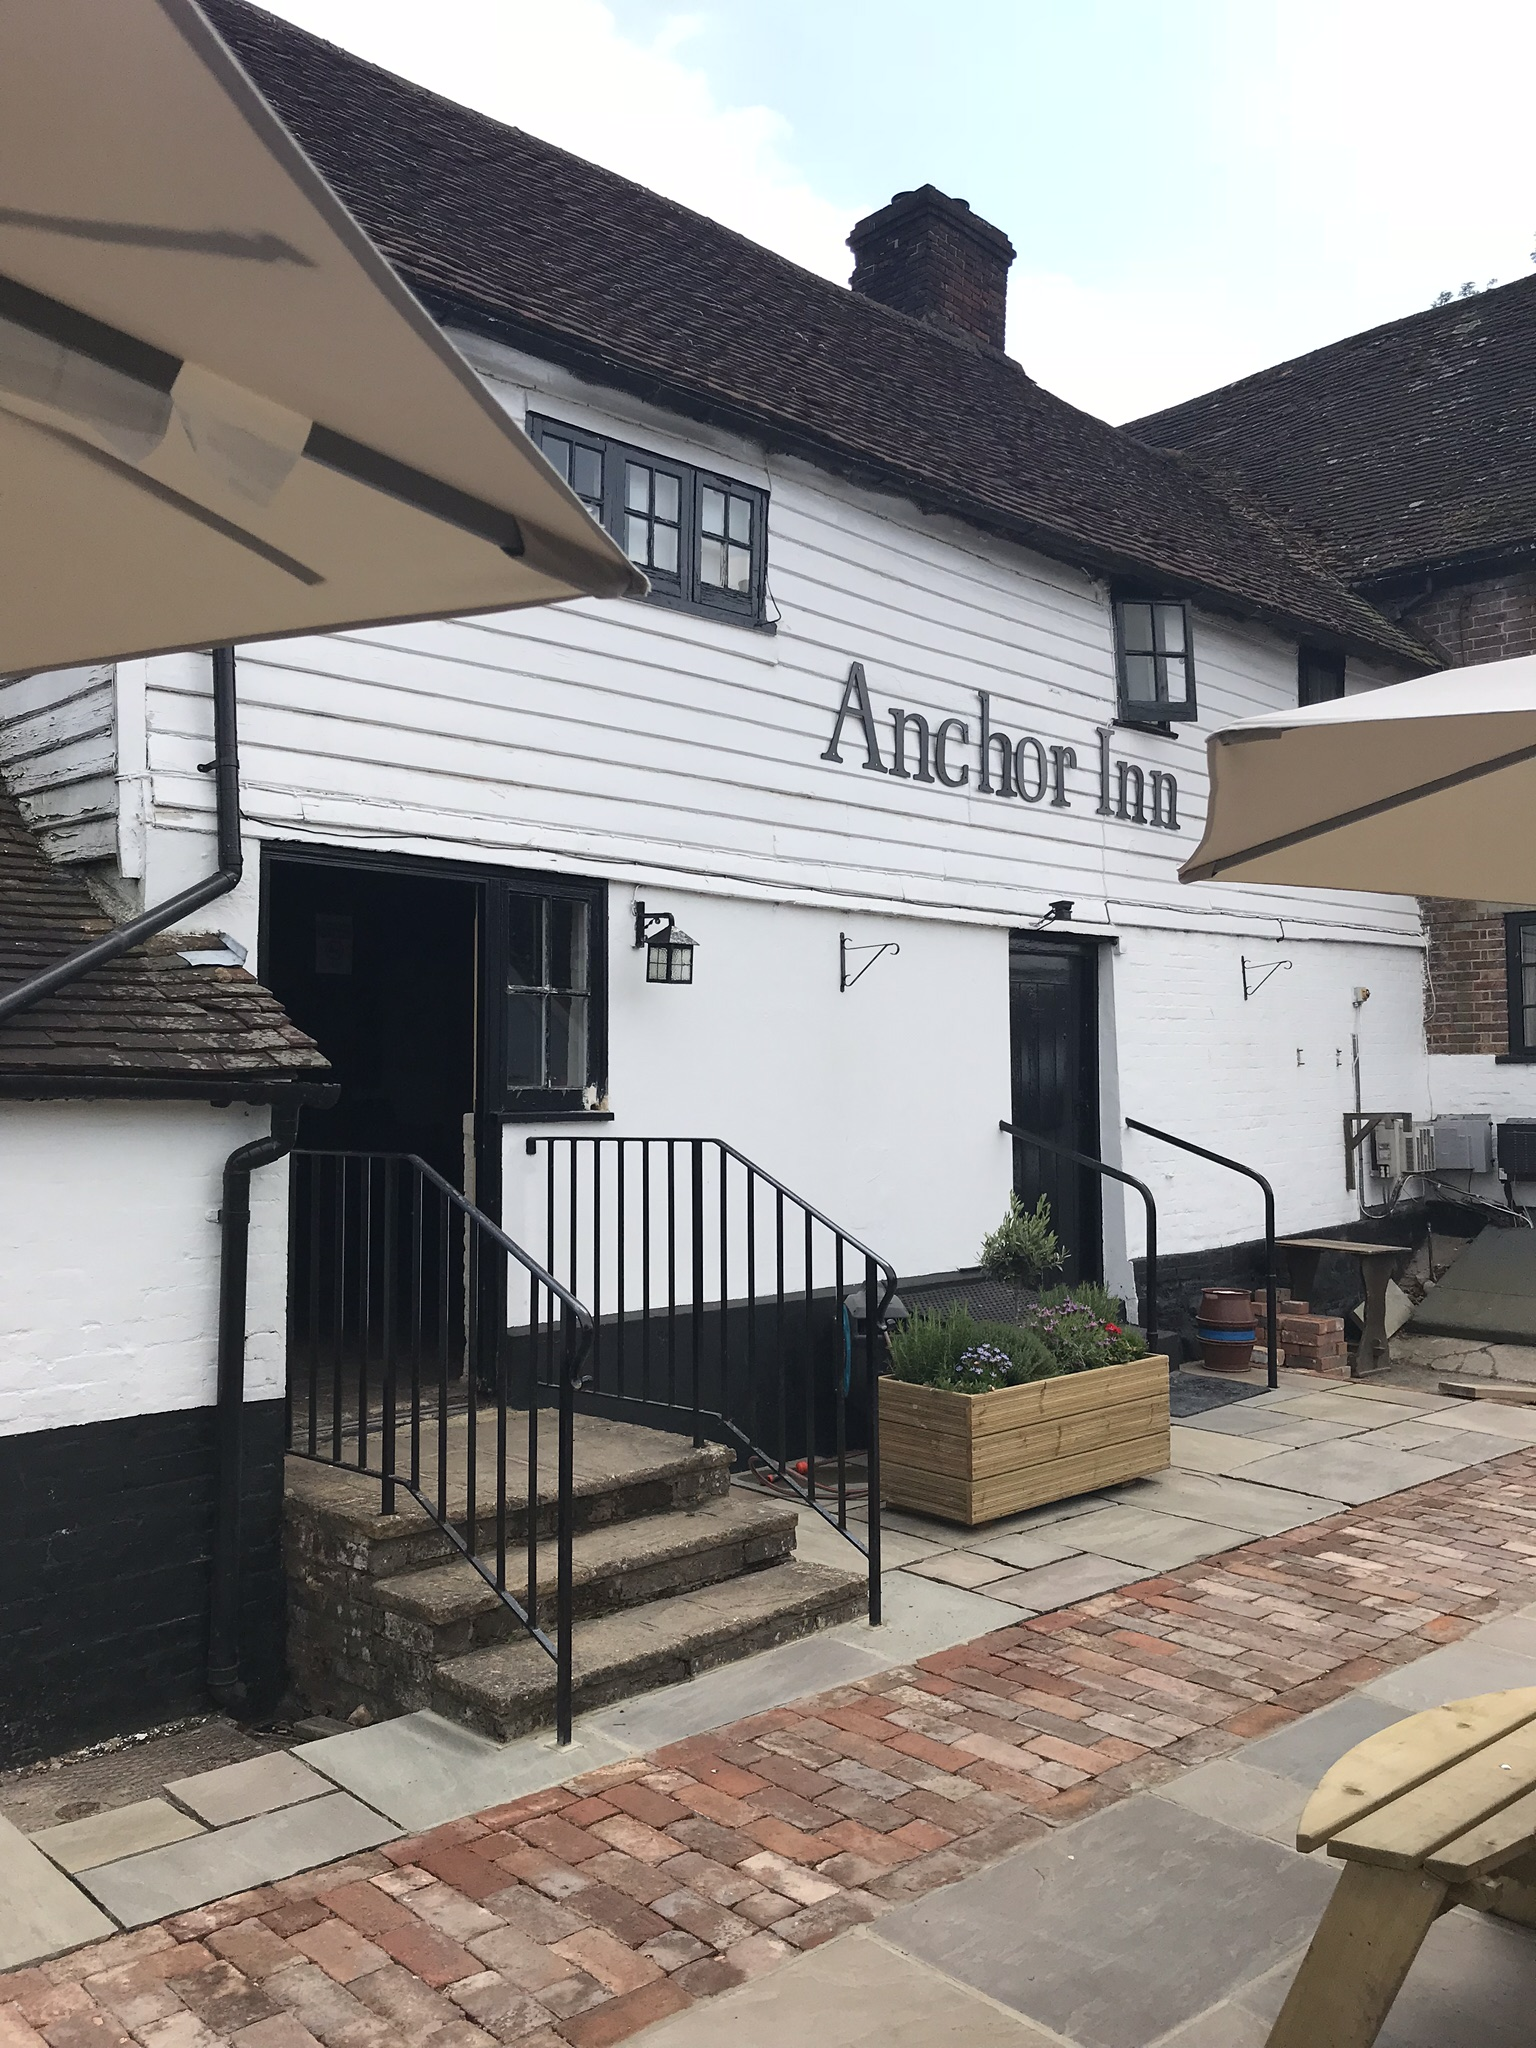 Image of the Anchor Inn - Hartfield